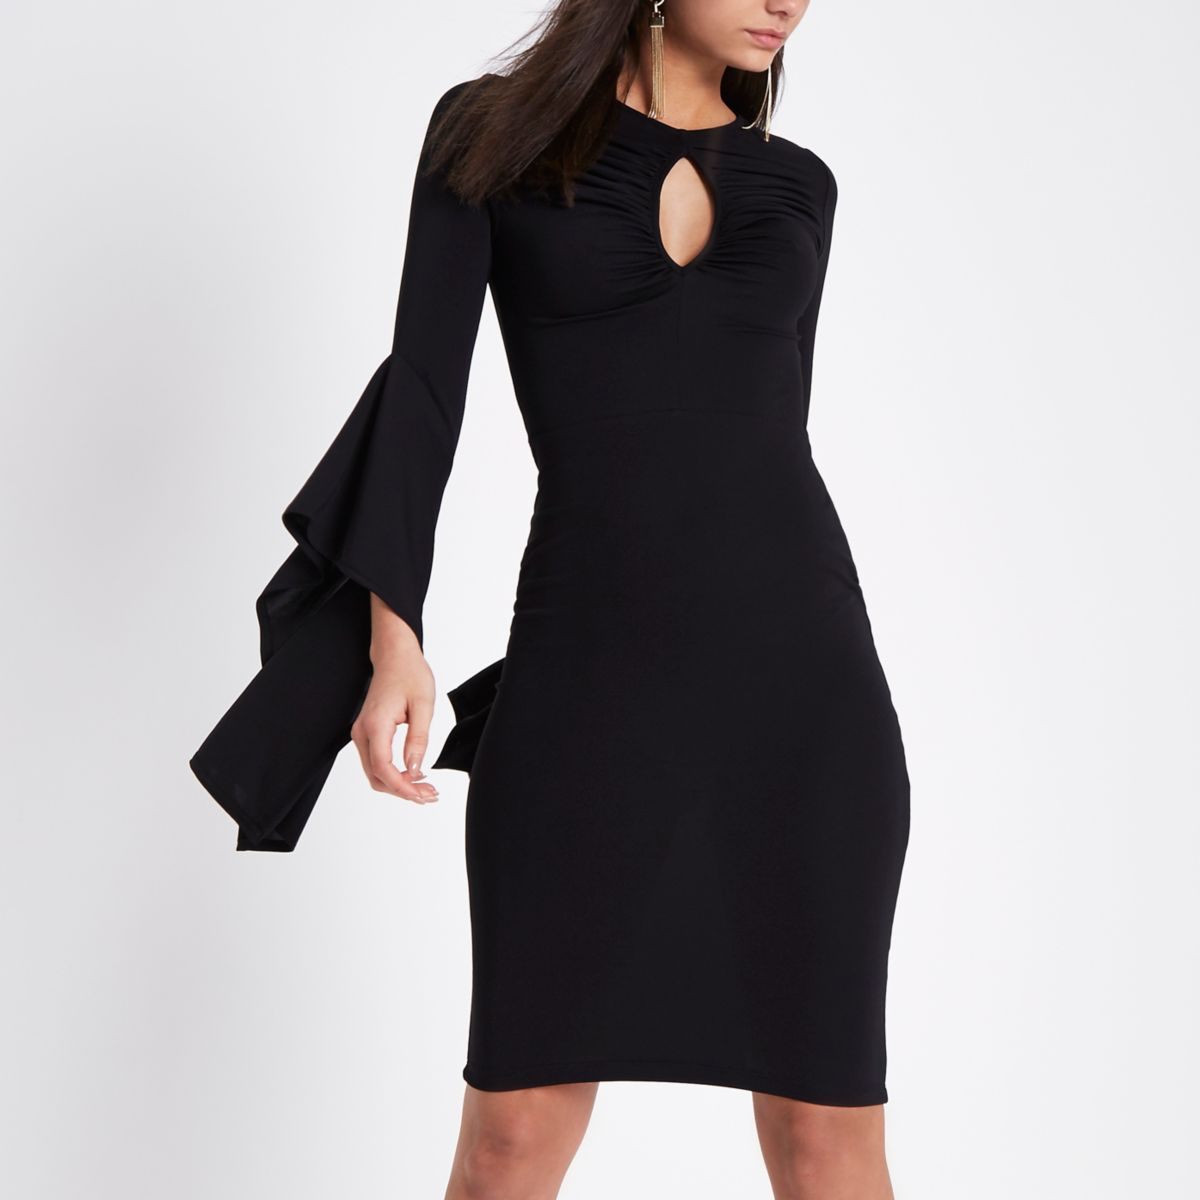 Black ruched keyhole cut out bodycon dress